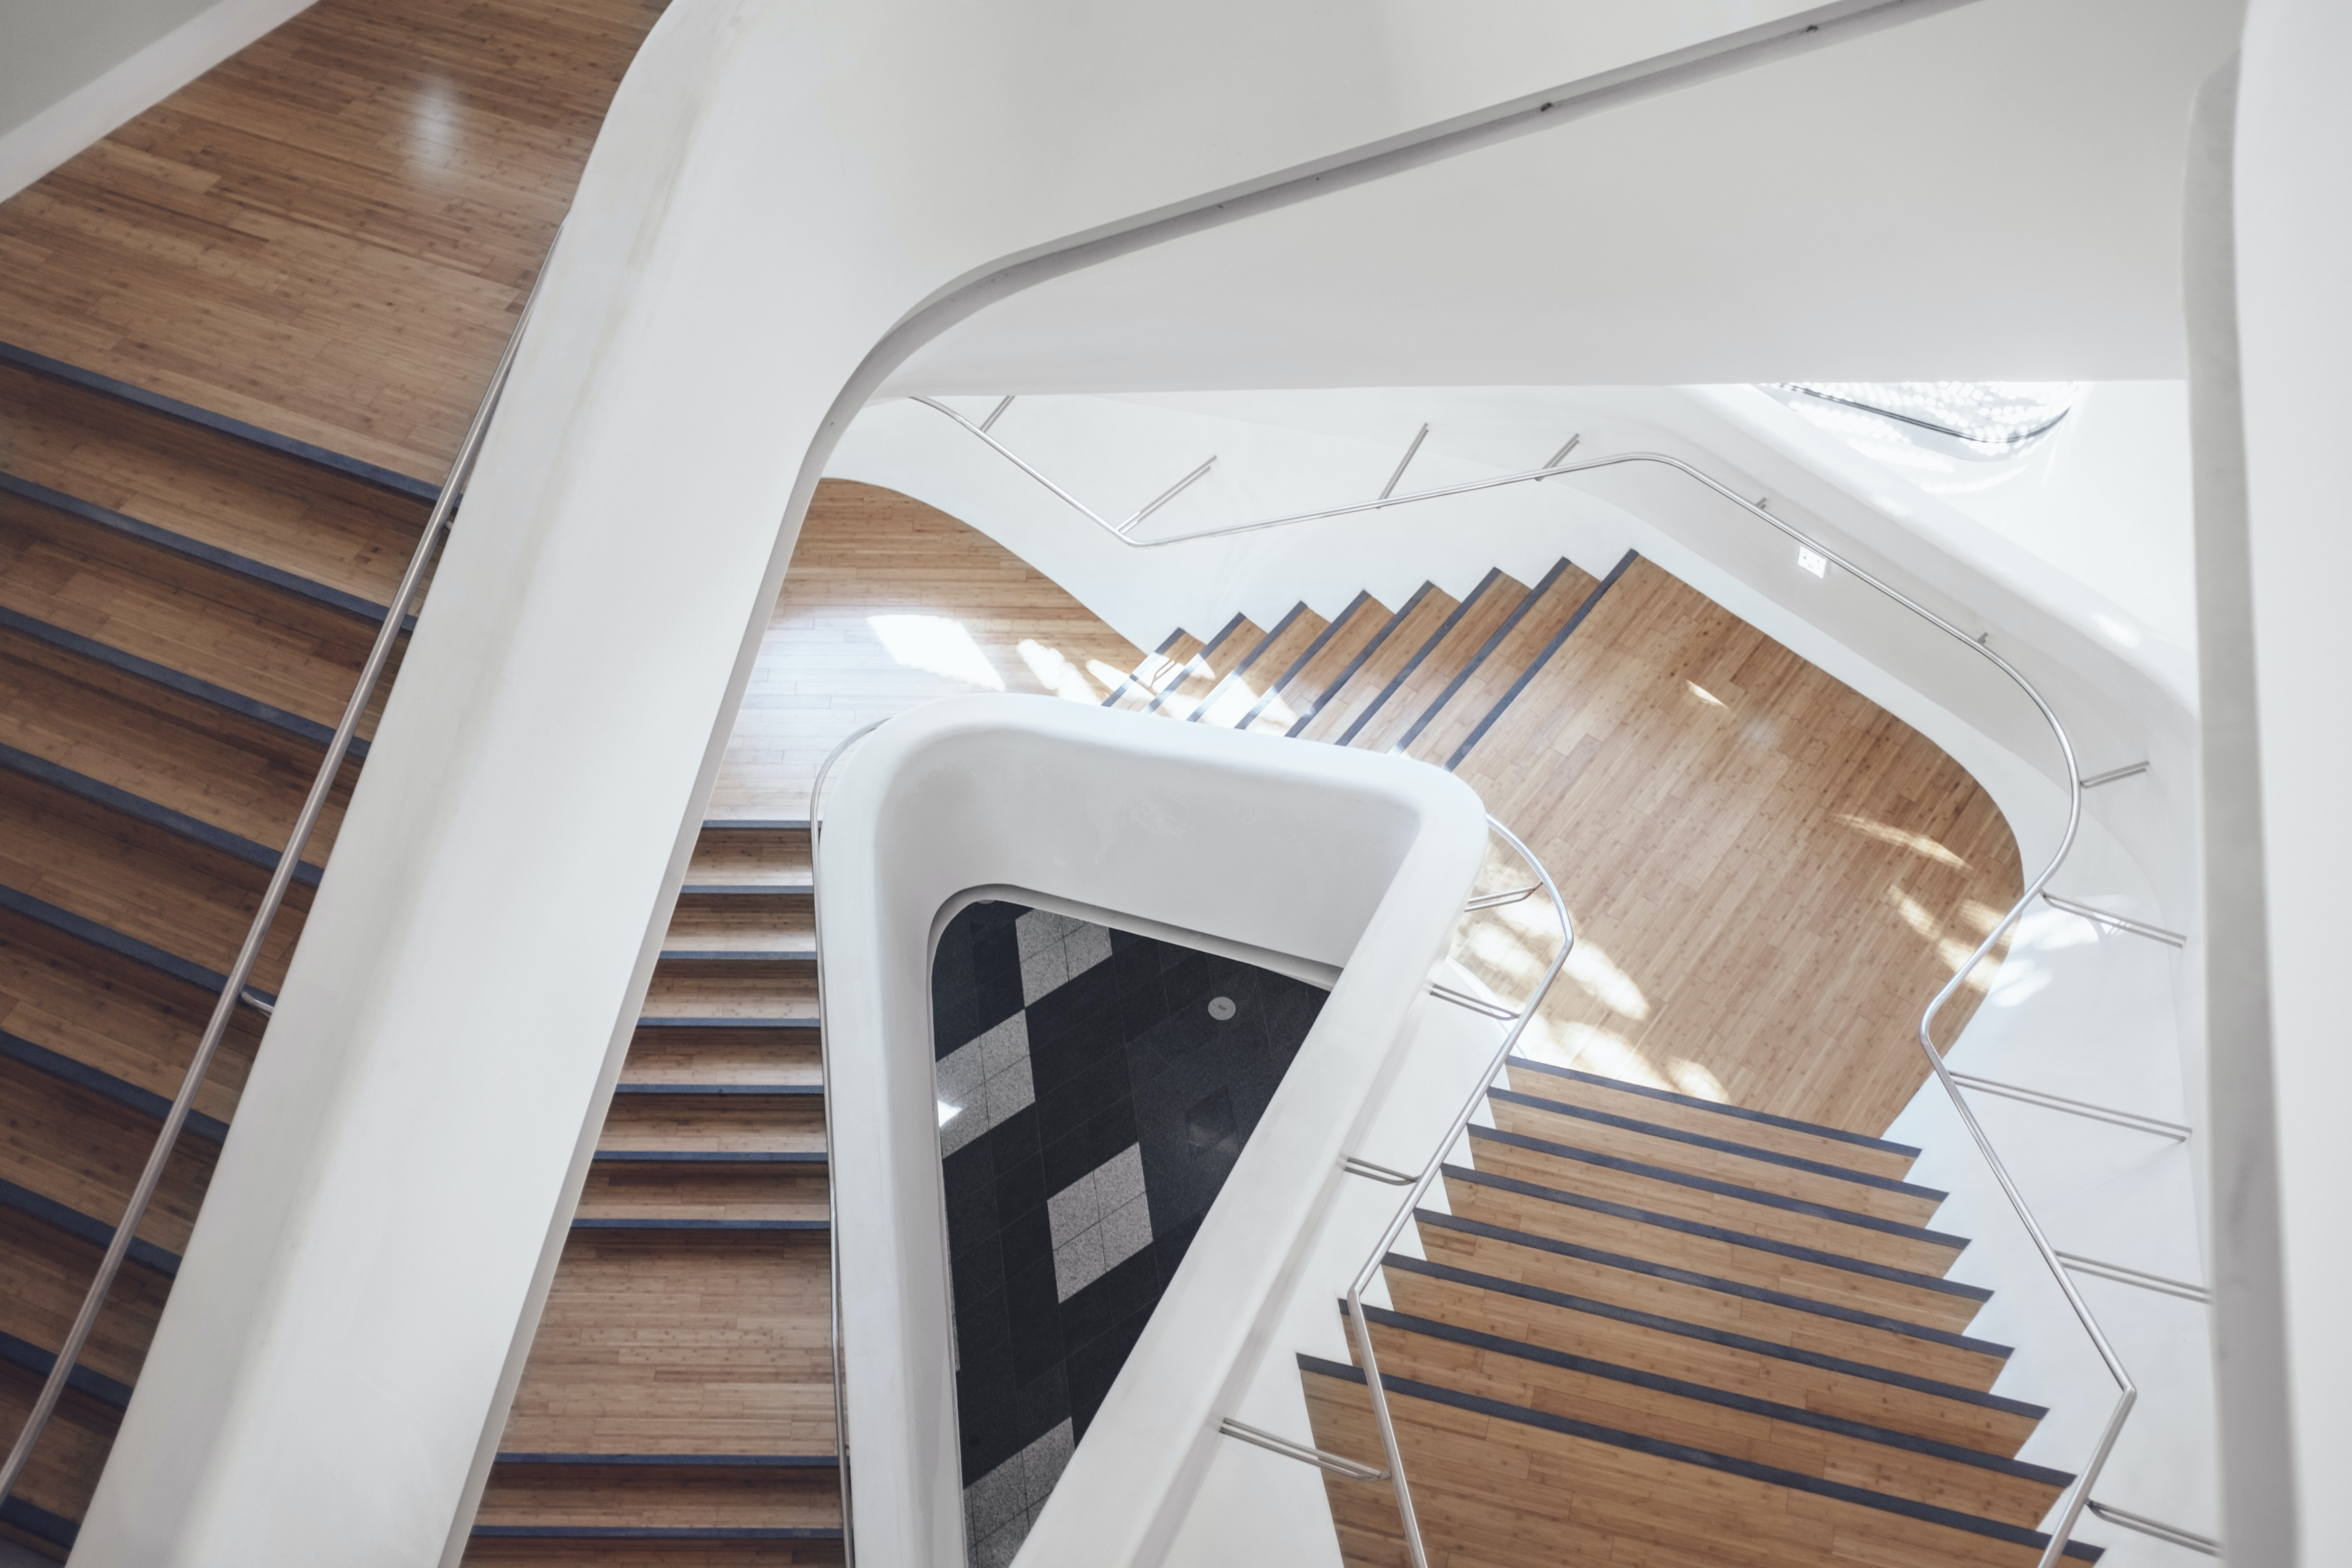 View down a white-painted stairway with wooden steps